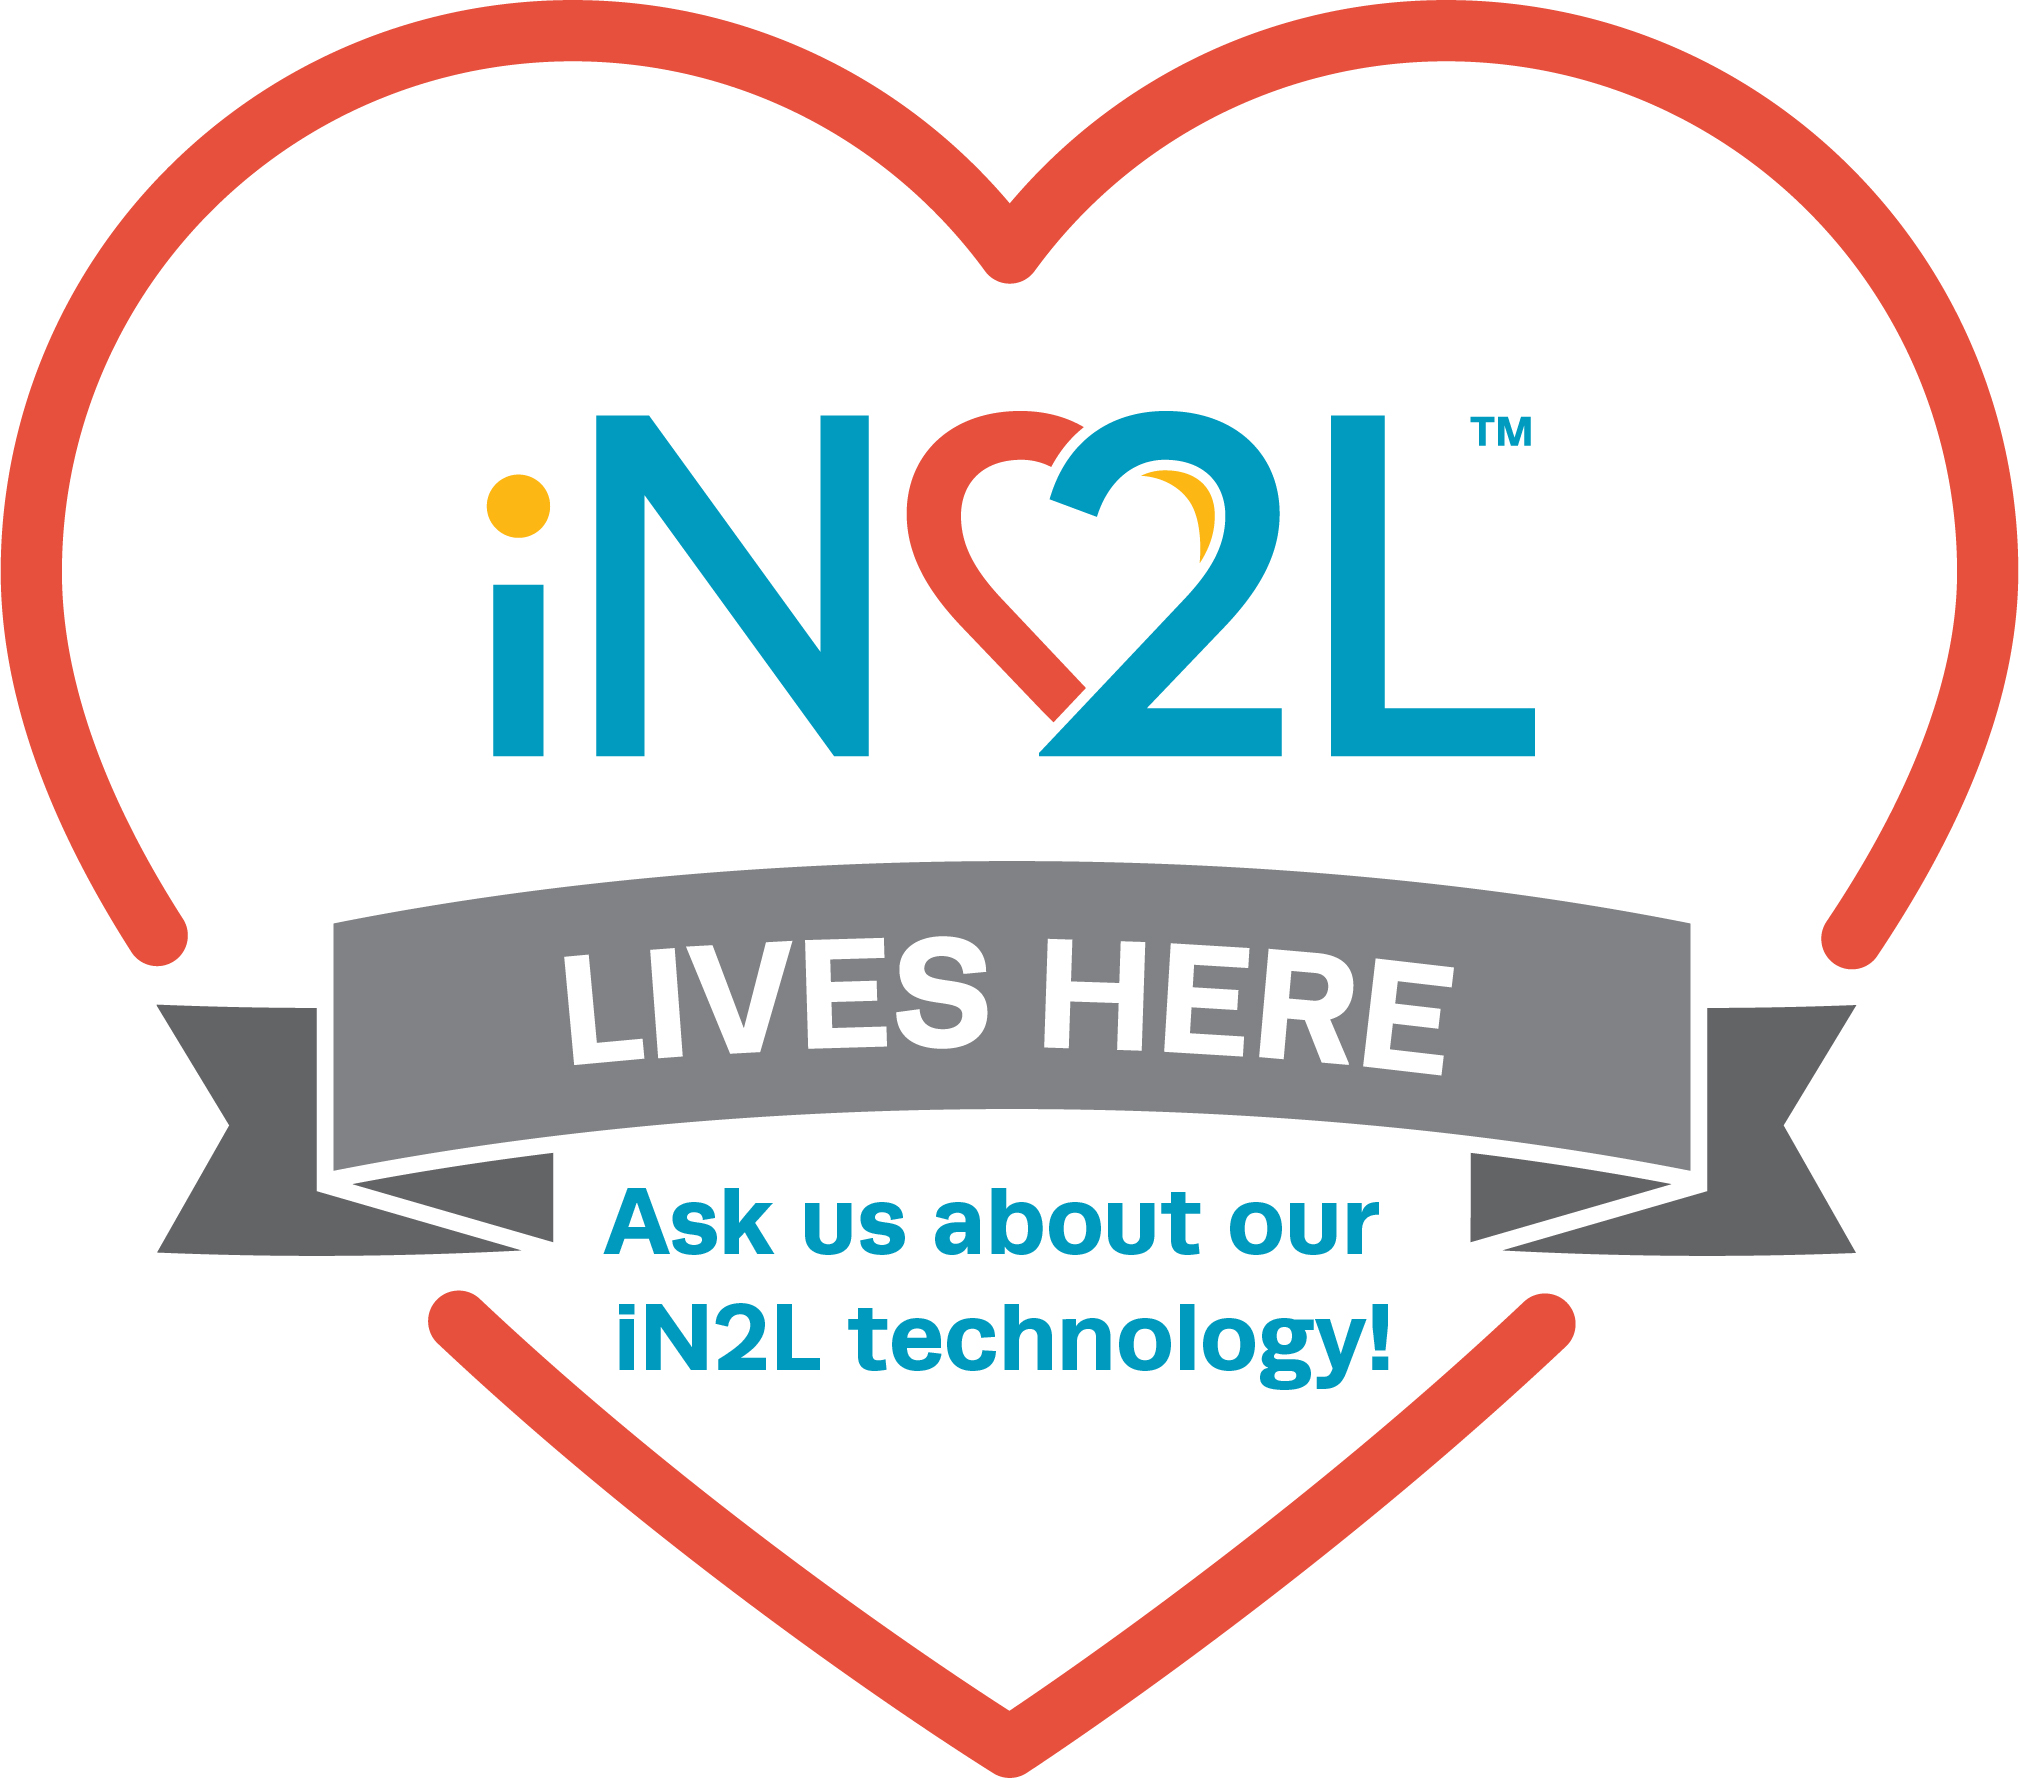 iN2L Lives Here badge